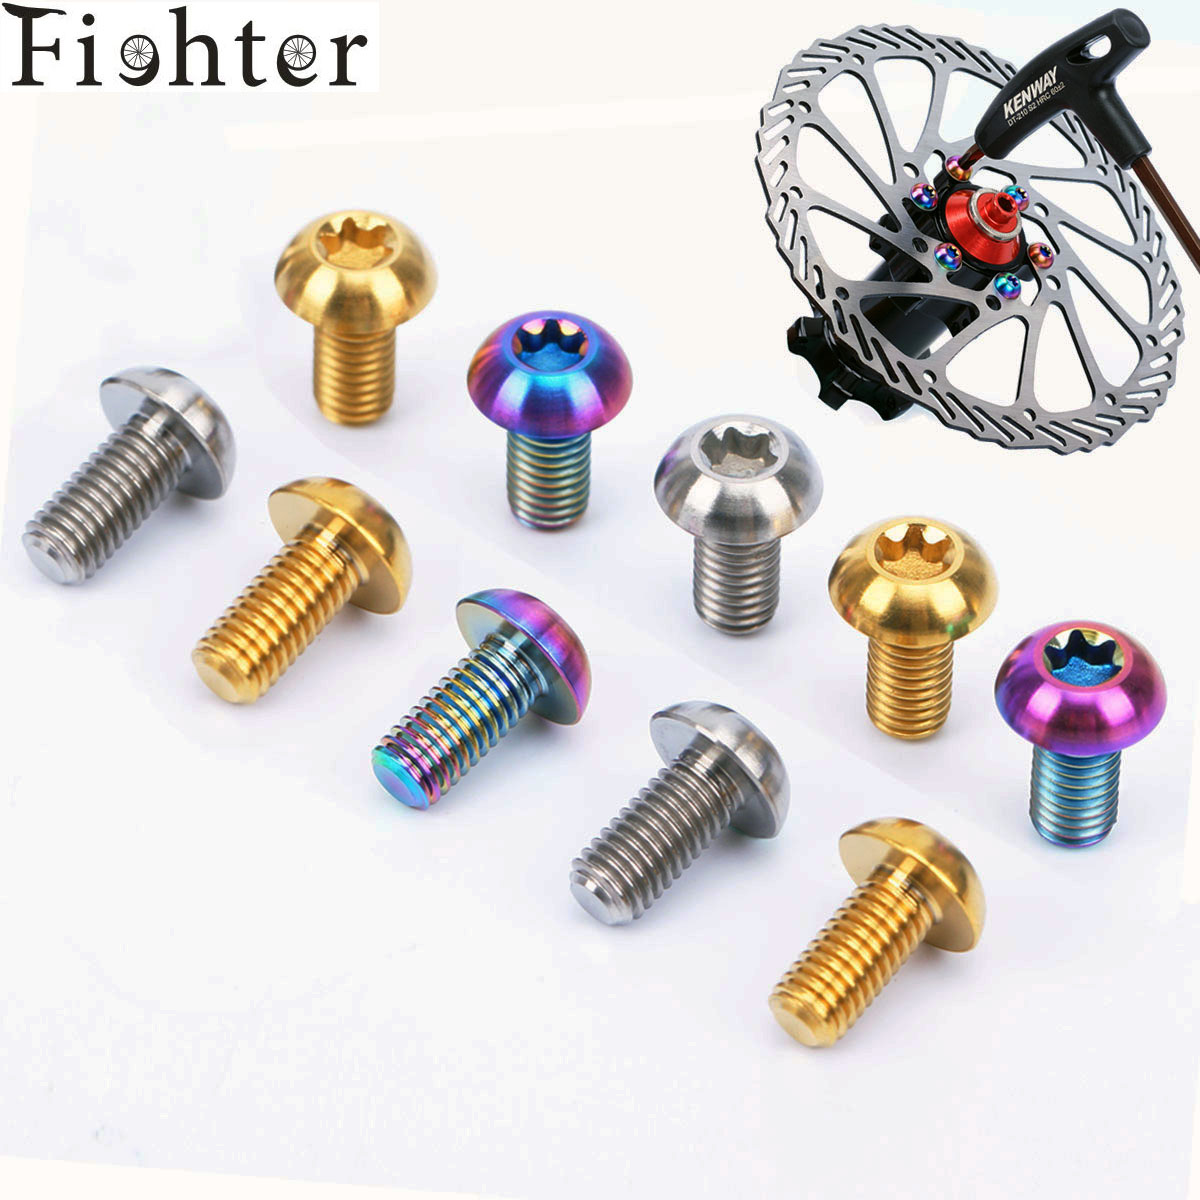 12pcs M5*10mm T25 Ti Disc Brake Rotor Bolts for MTB Bicycle Road bike Titanium Torx Rotor Screw for Avid Sram ultralight